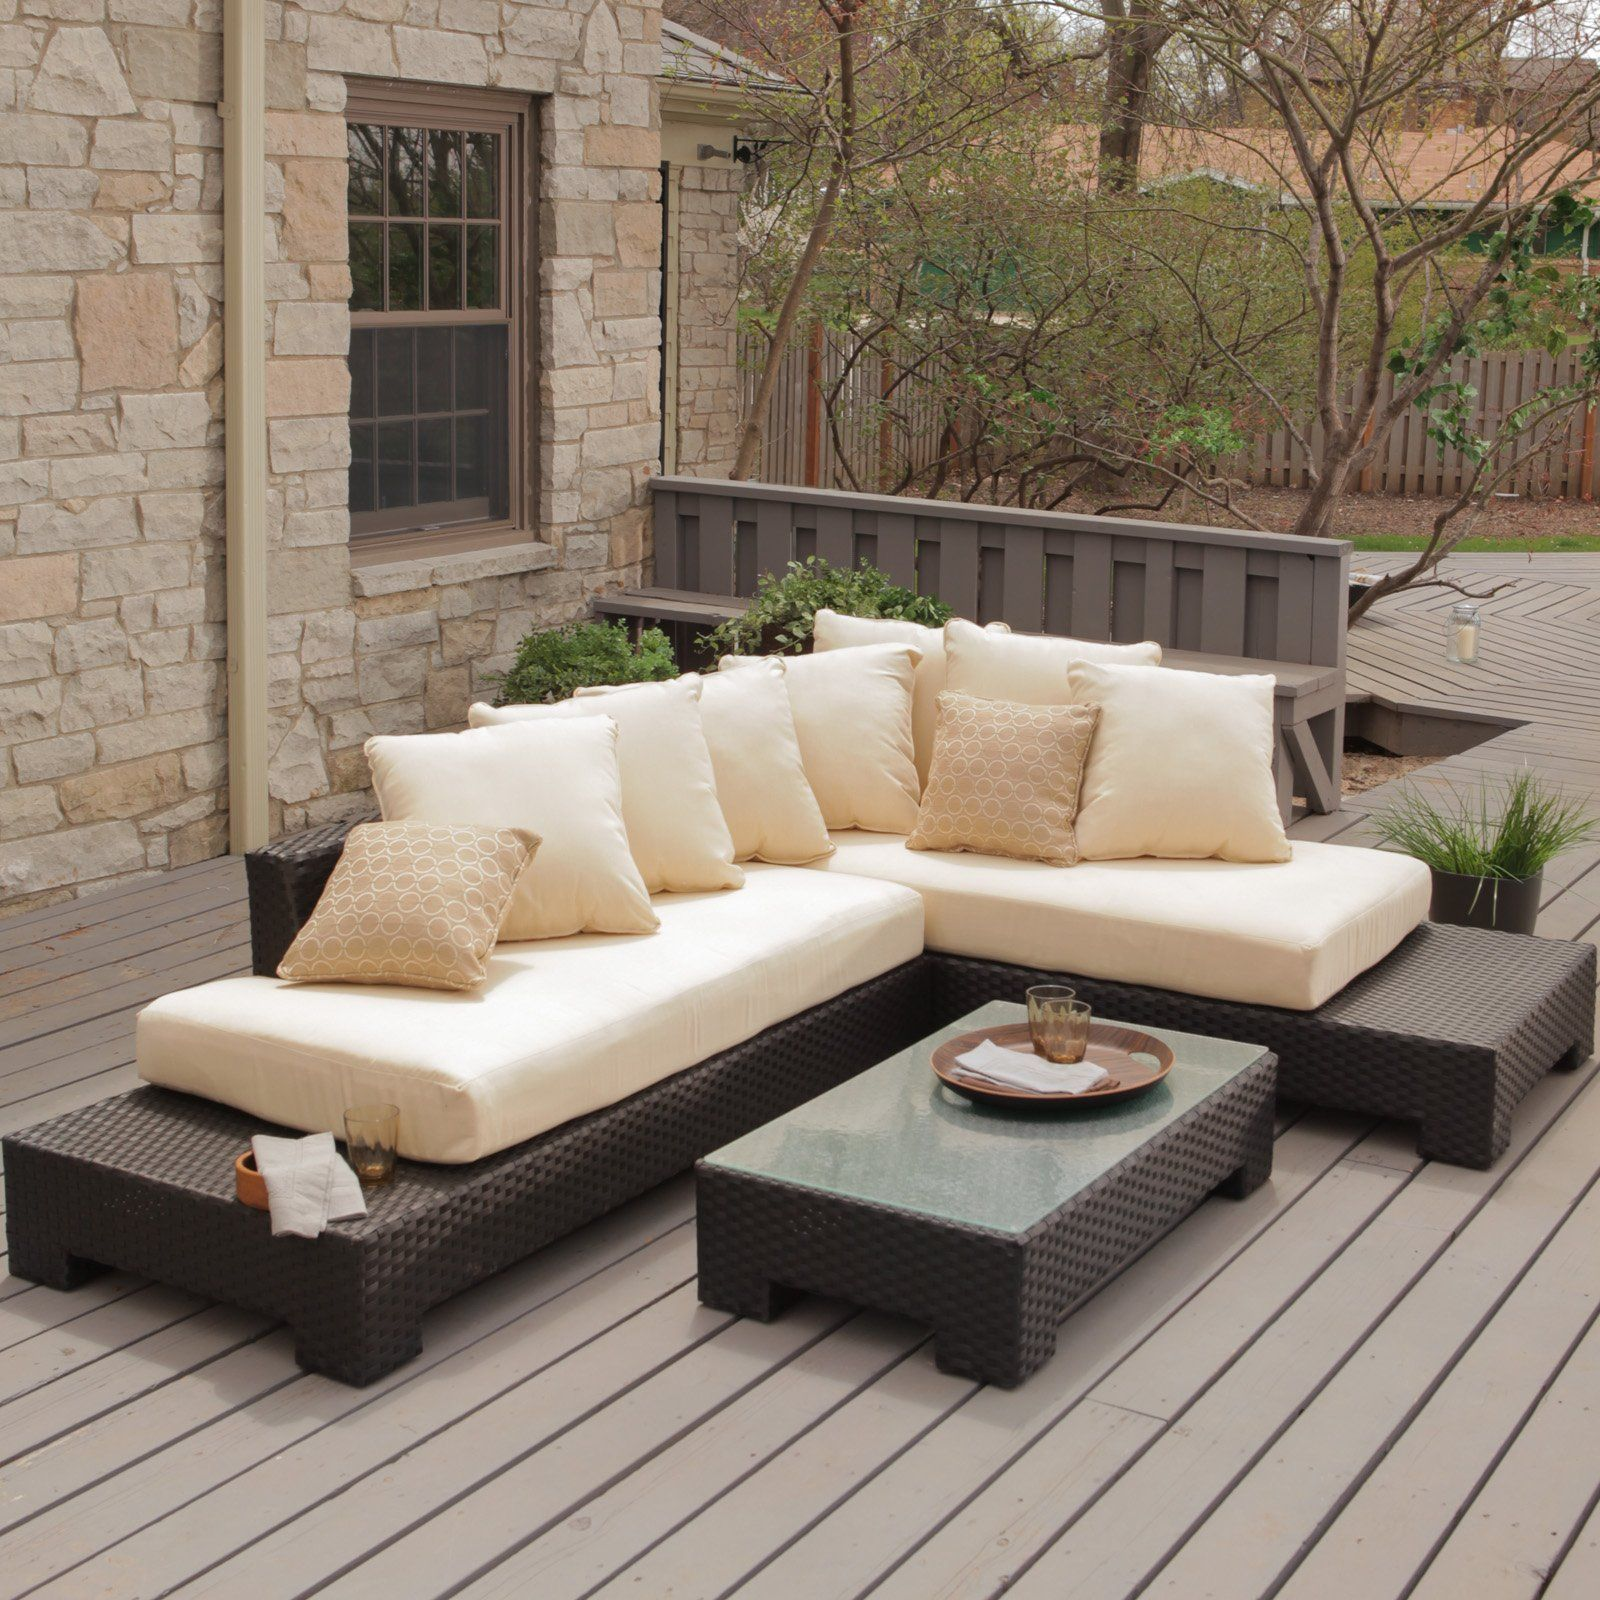 Black Coffee Table Sheffield: 25 Awesome Modern Brown All-Weather Outdoor Patio